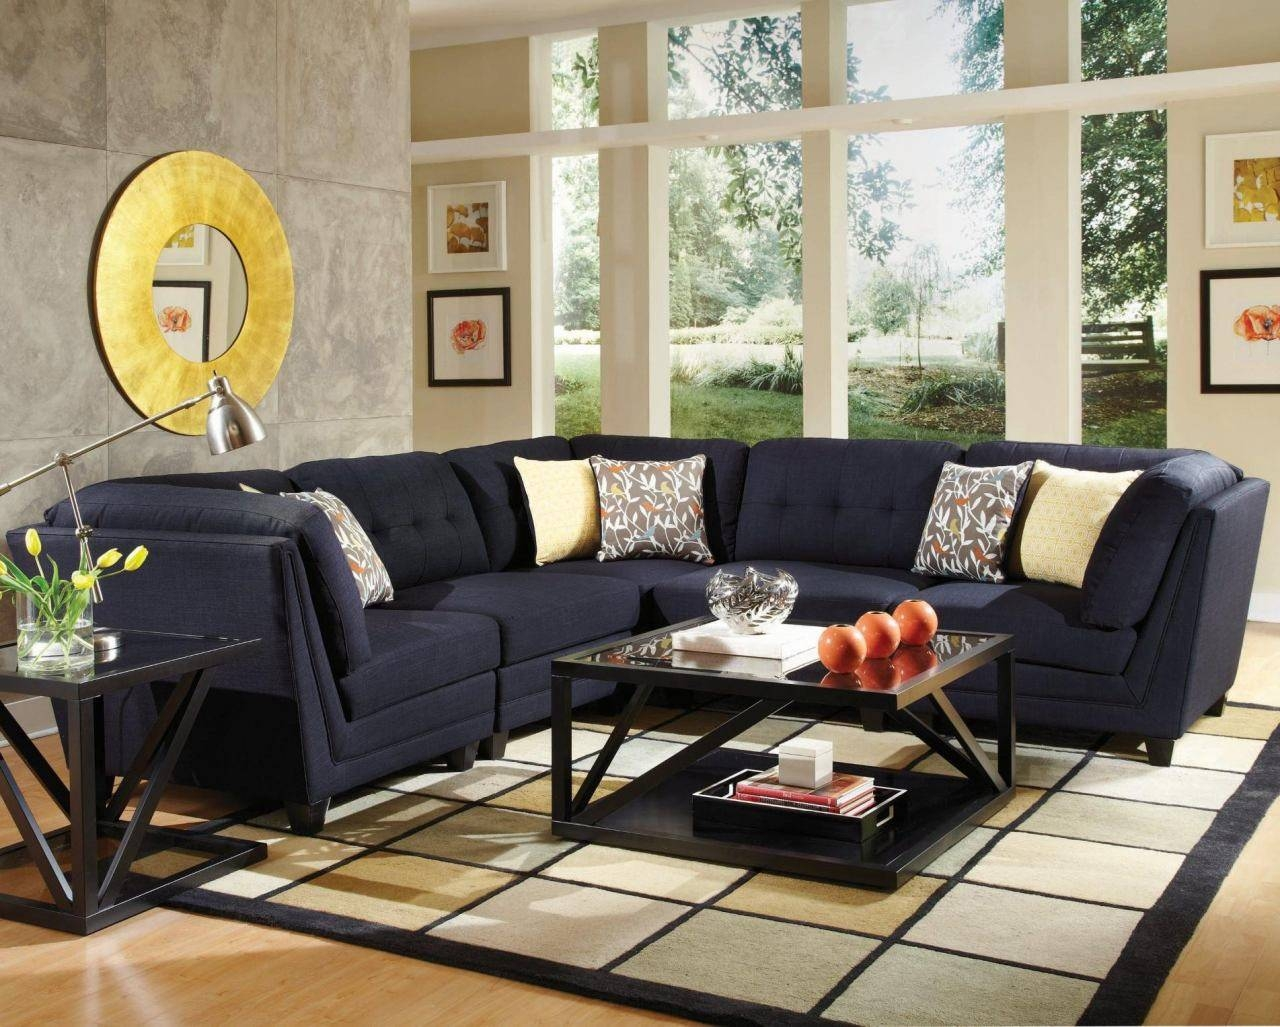 Keaton 5-Pc Sectional Living Room Set In Midnight Blue throughout Midnight Blue Sofas (Image 5 of 15)